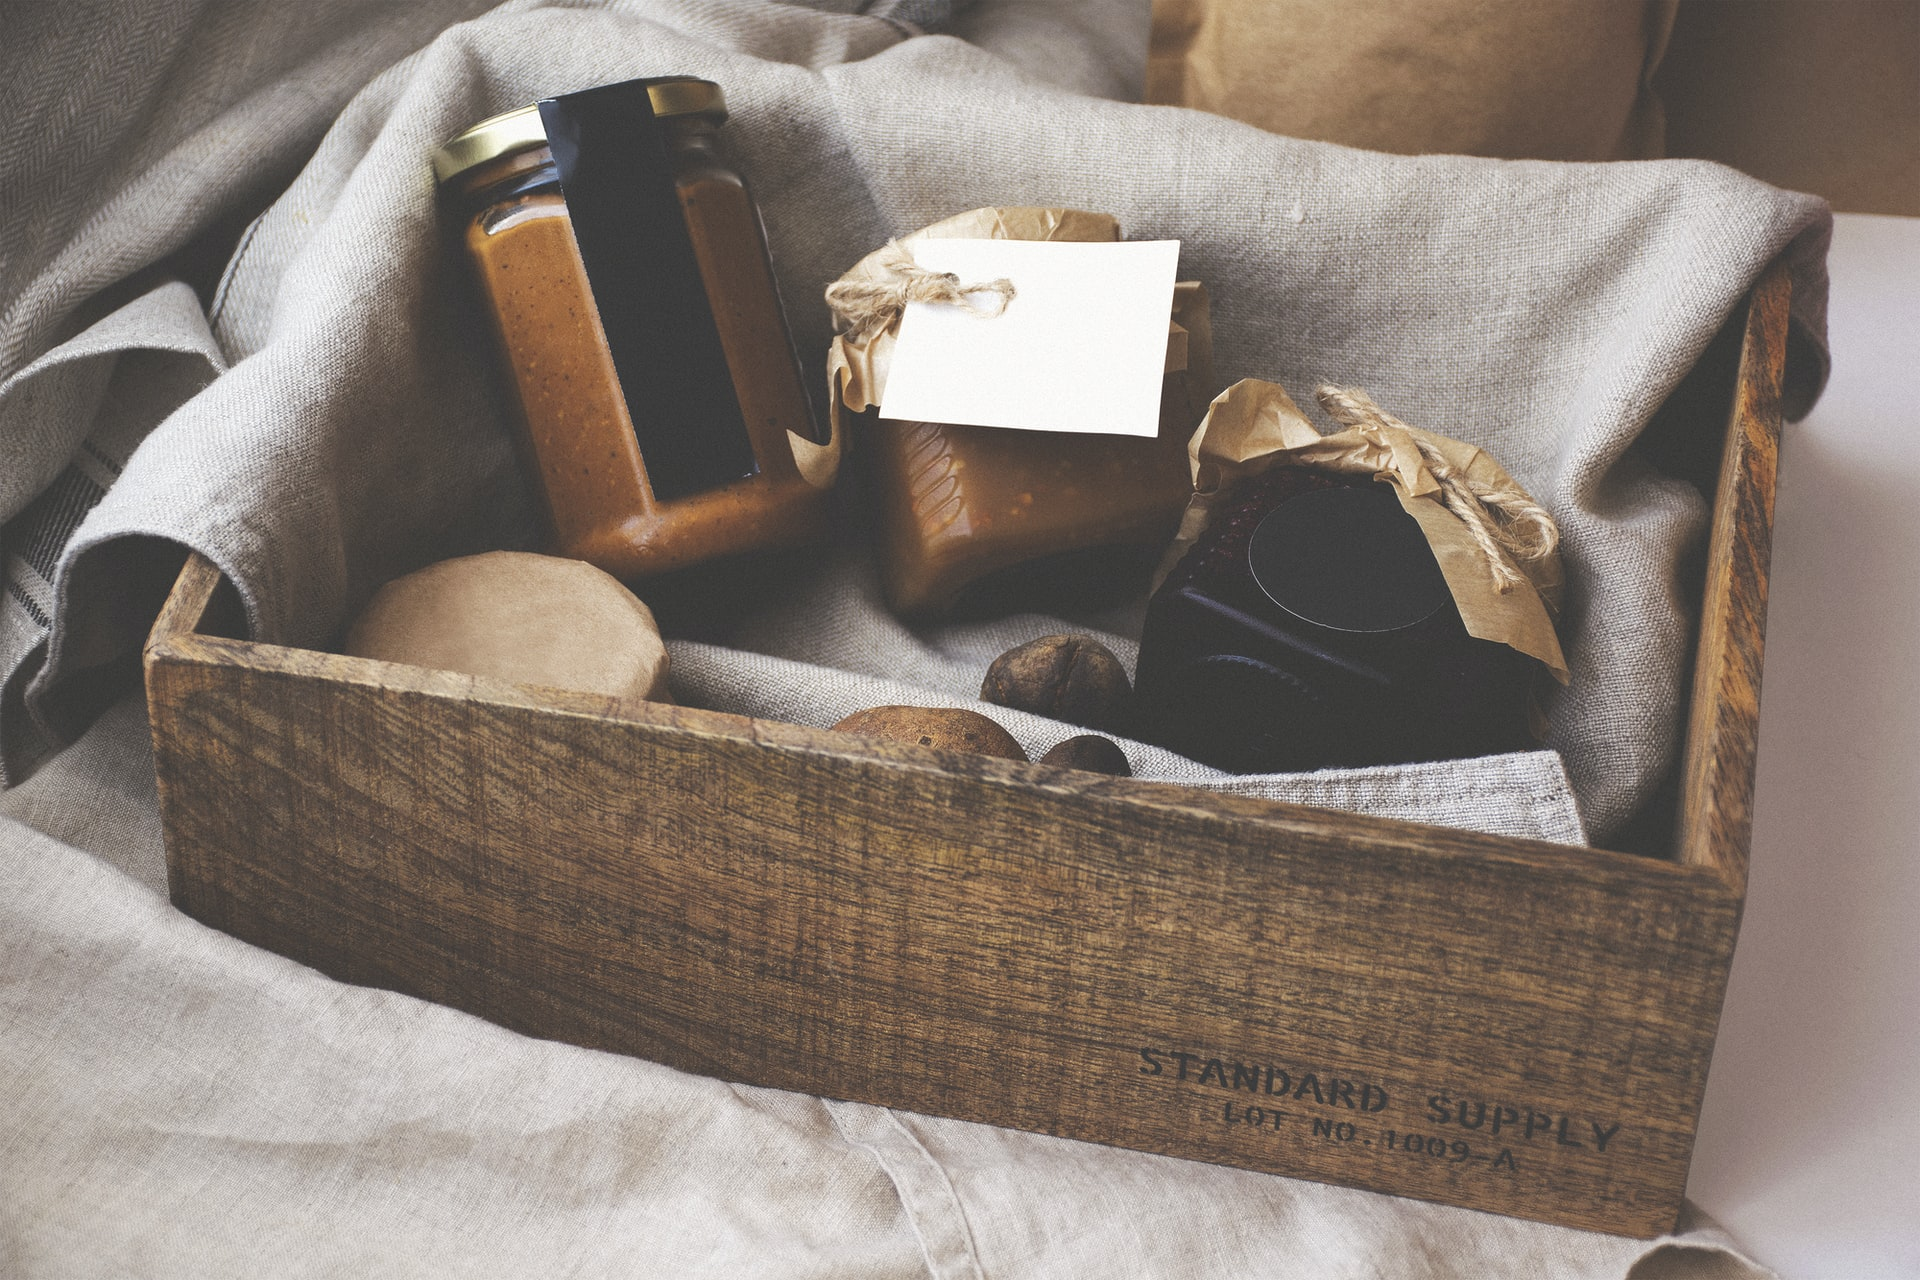 Shop Unique, Curated Gifts at Olives & Grace